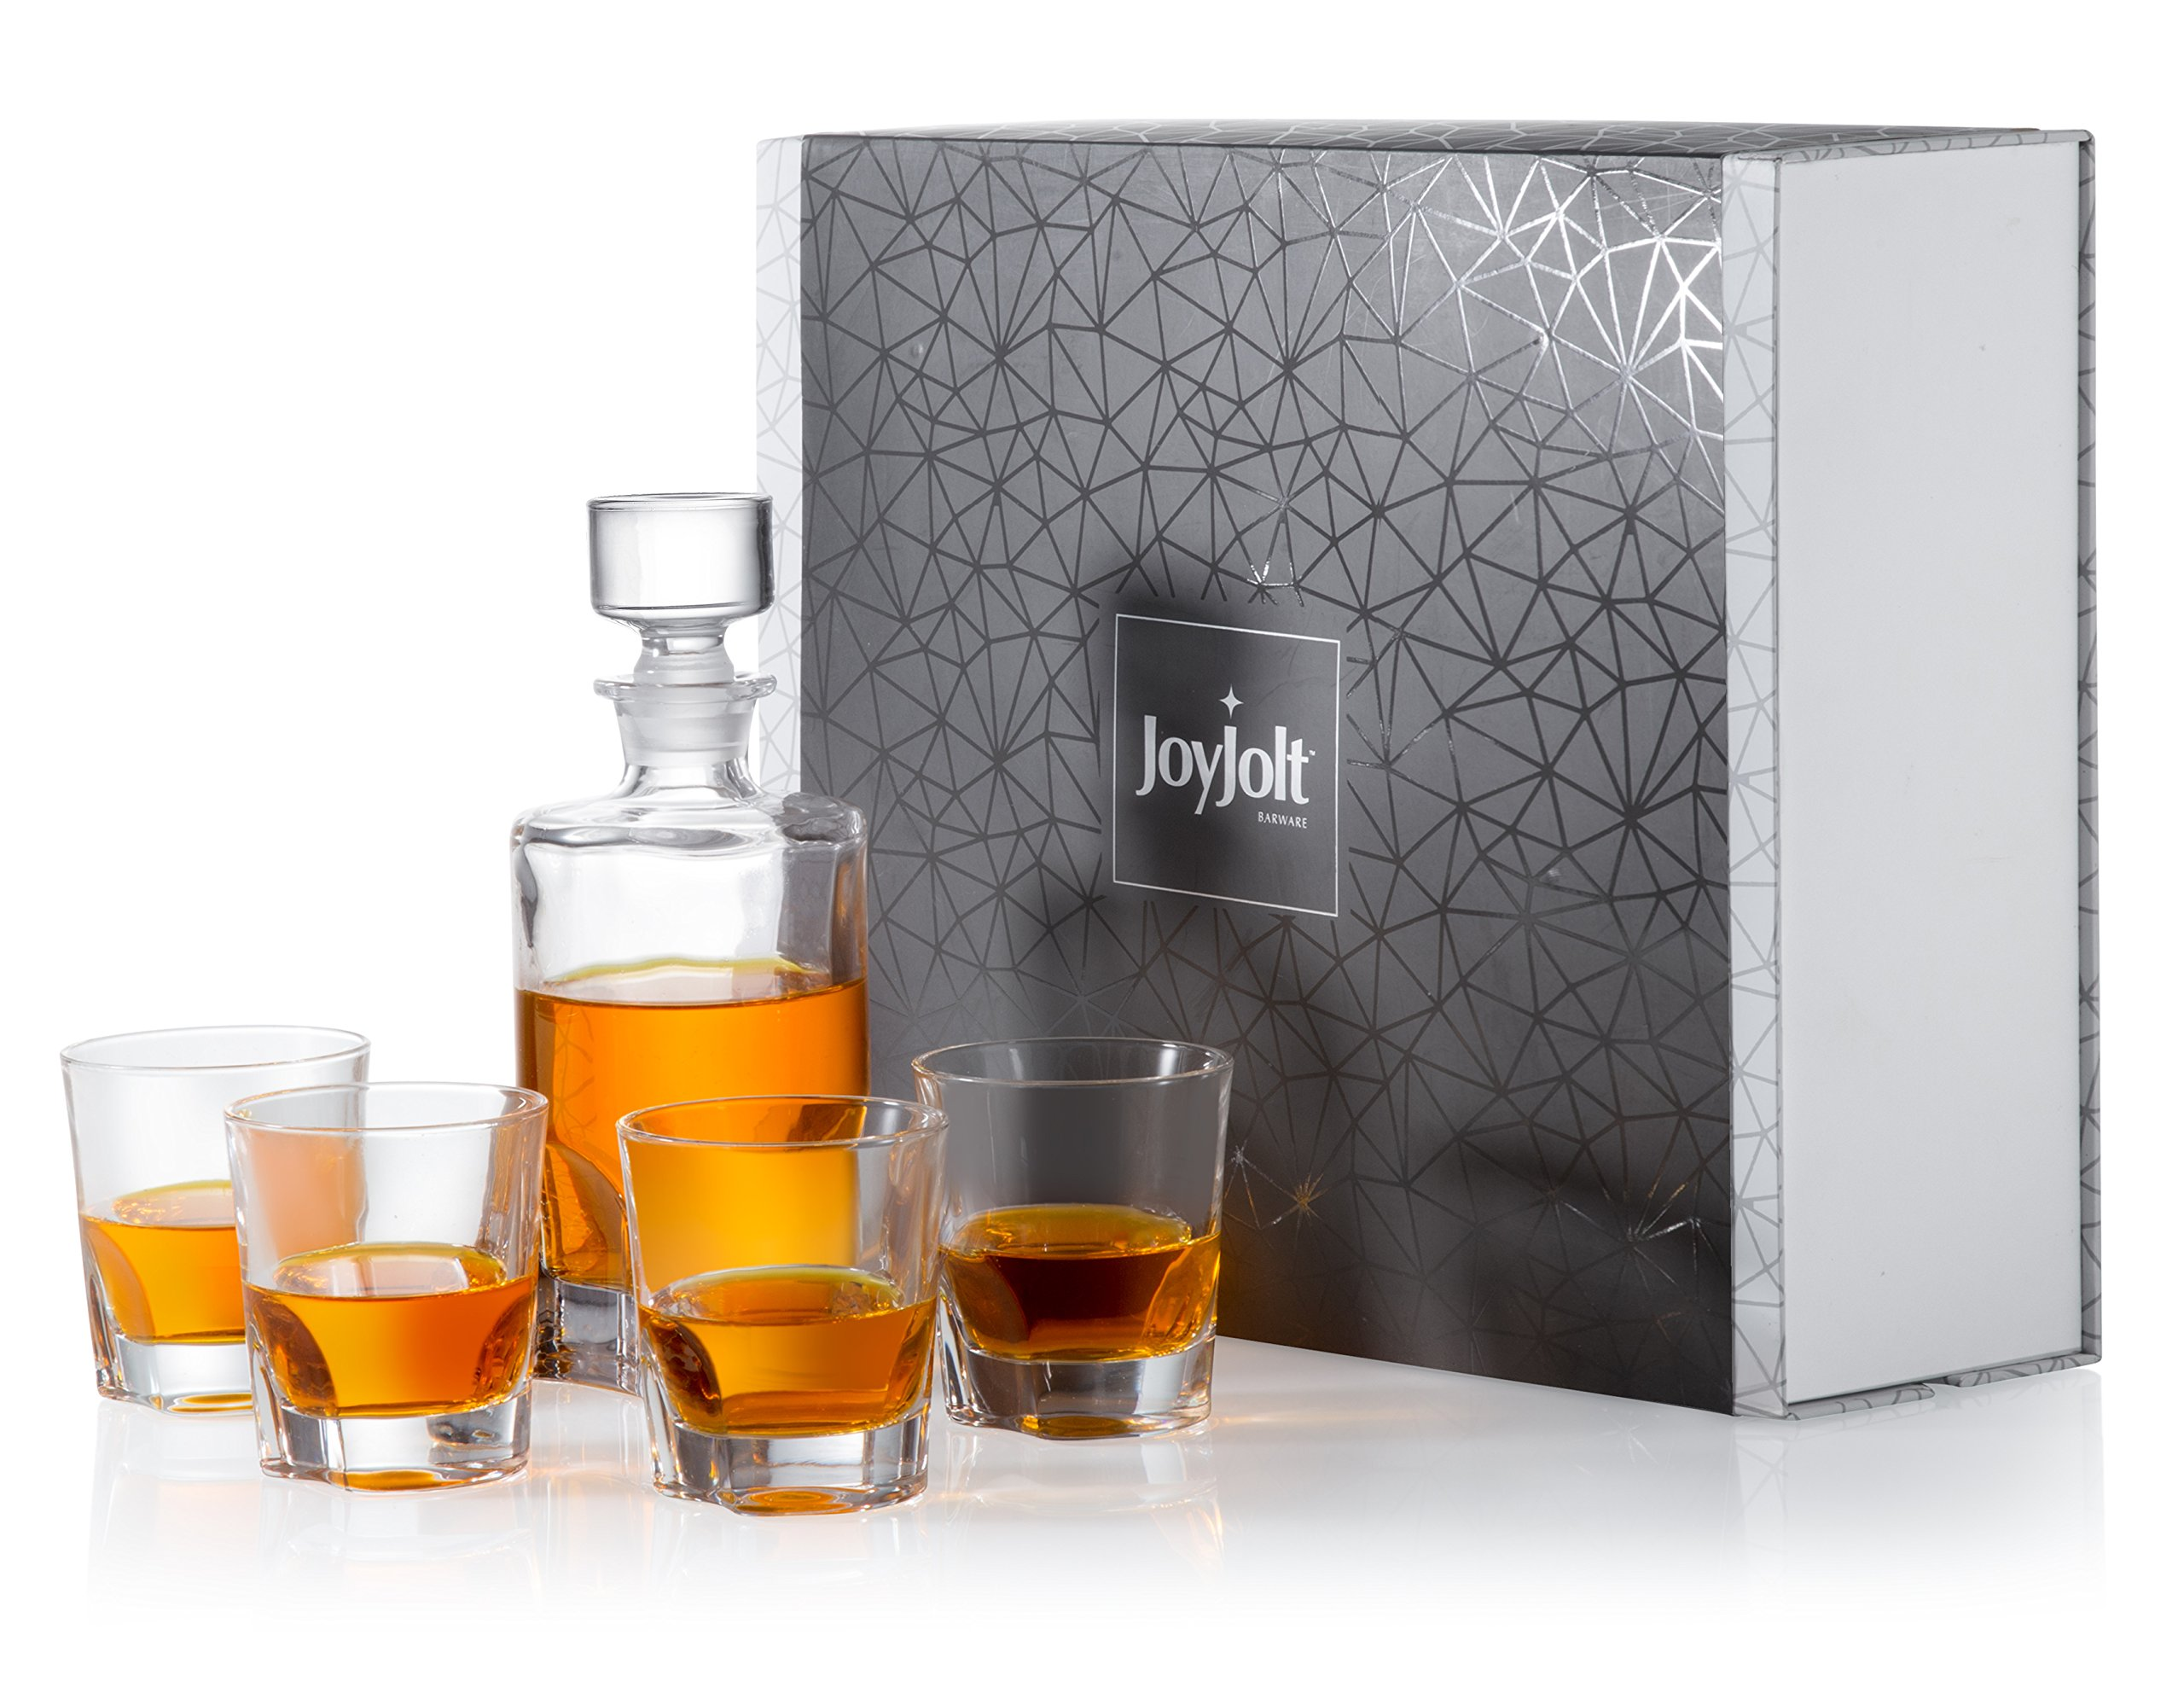 JoyJolt Carina 5 Piece Whiskey Decanter And Glass Set, 100% Lead-Free Crystal Bar Set Prefer For Scotch, Liquor, Bourbon Comes with A Whisky Decanter Sets And 4 Old Fashioned Glasses.